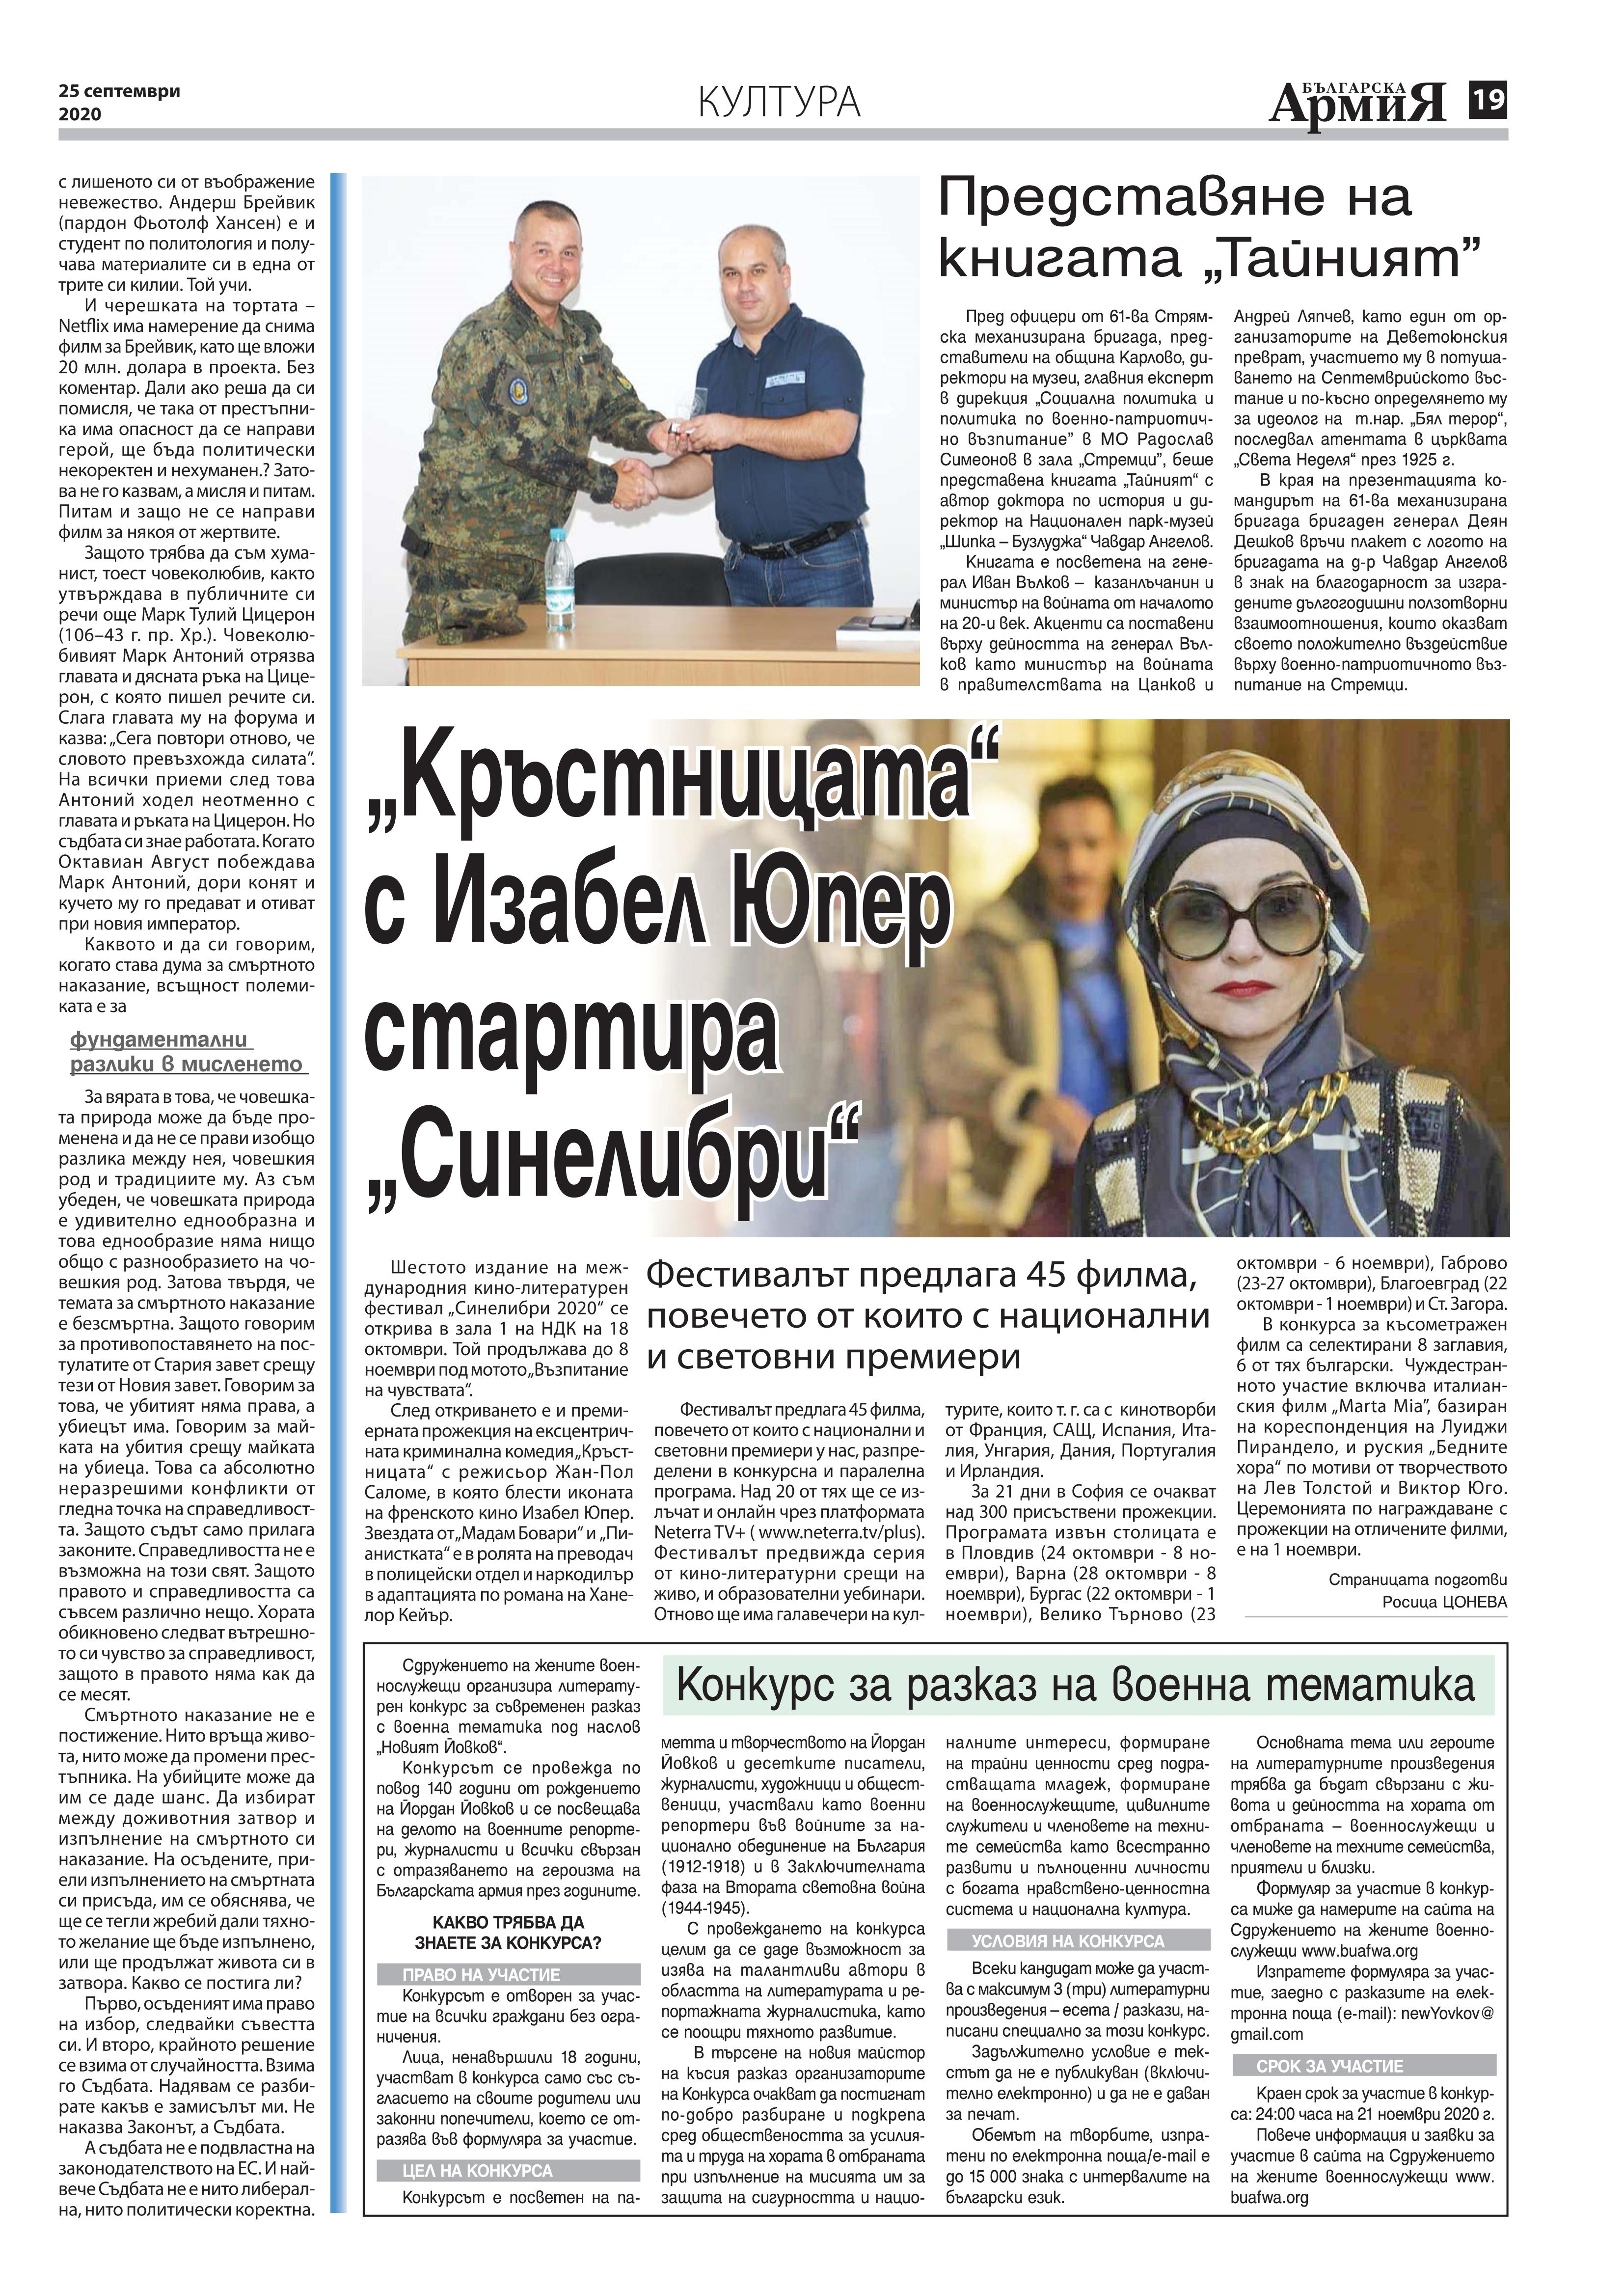 https://armymedia.bg/wp-content/uploads/2015/06/19.page1_-152.jpg